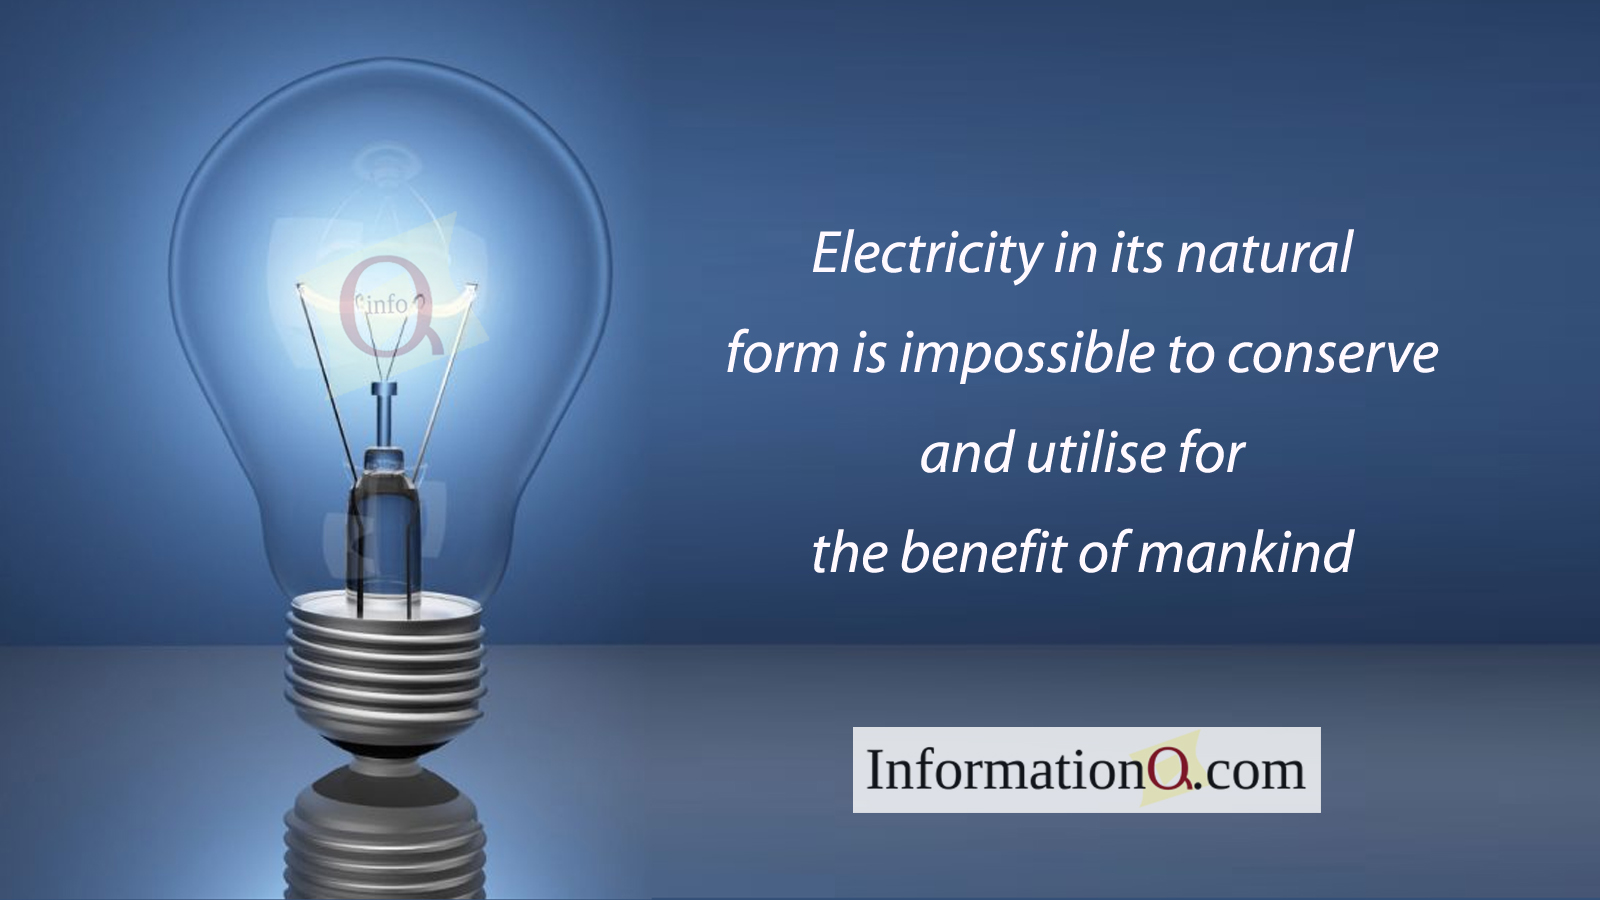 Electricity in its natural form is impossible to conserve and utilise for the benefit of mankind